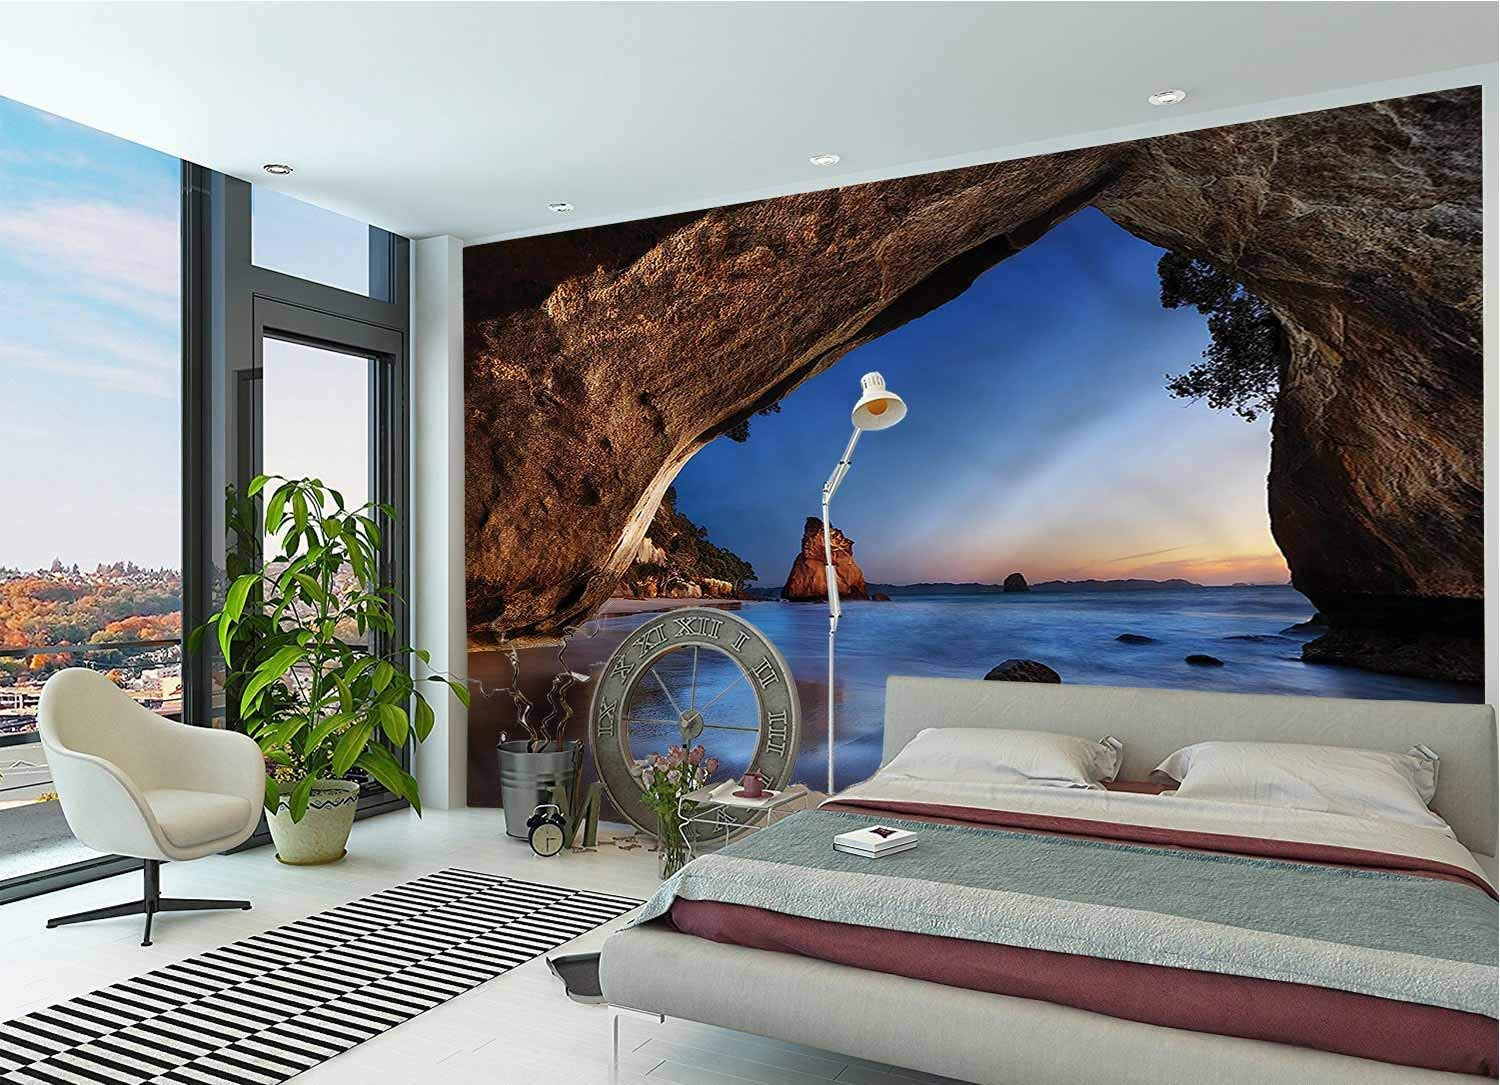 LCGGDB Natural Cave Large Wall Mural,New Zealand Dream Land Removable Large Sticker Foil Wall Decor for Office Kids Bedroom Nursery Family Decor-118x83 Inch